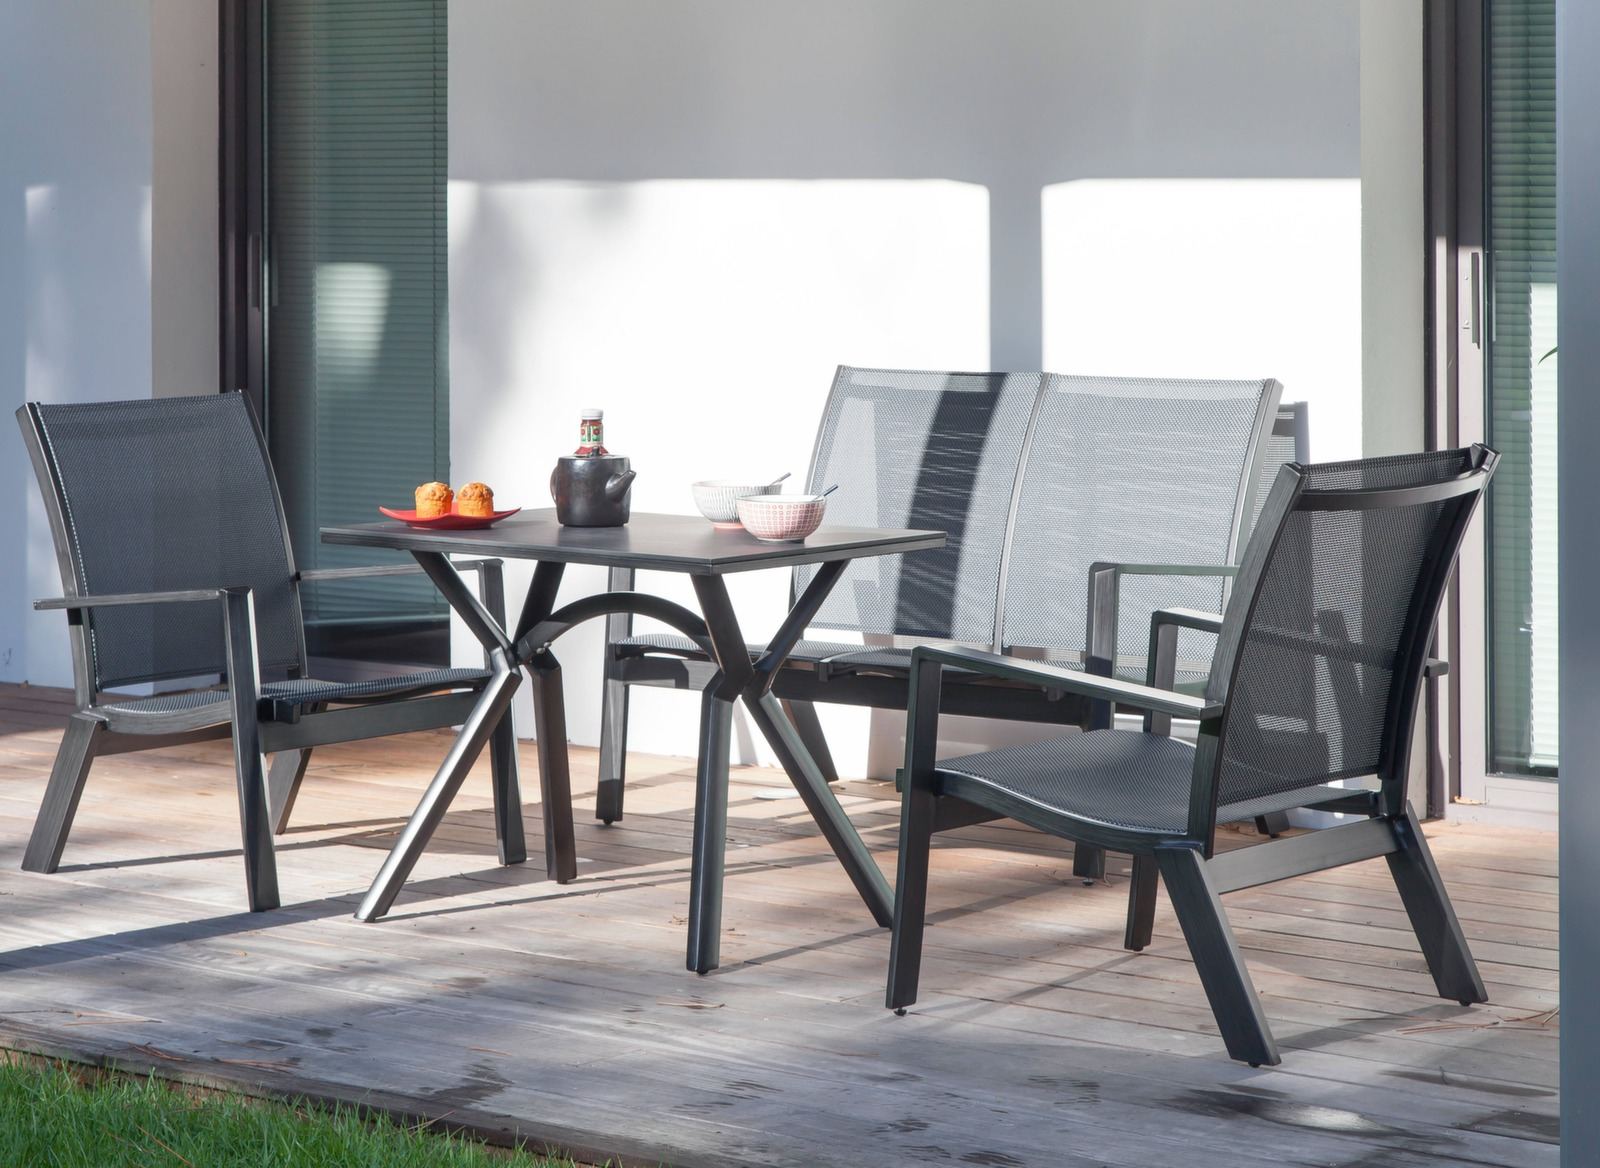 table loane pour salon d 39 angle finition brush tables de jardin meubles de jardin en ligne. Black Bedroom Furniture Sets. Home Design Ideas